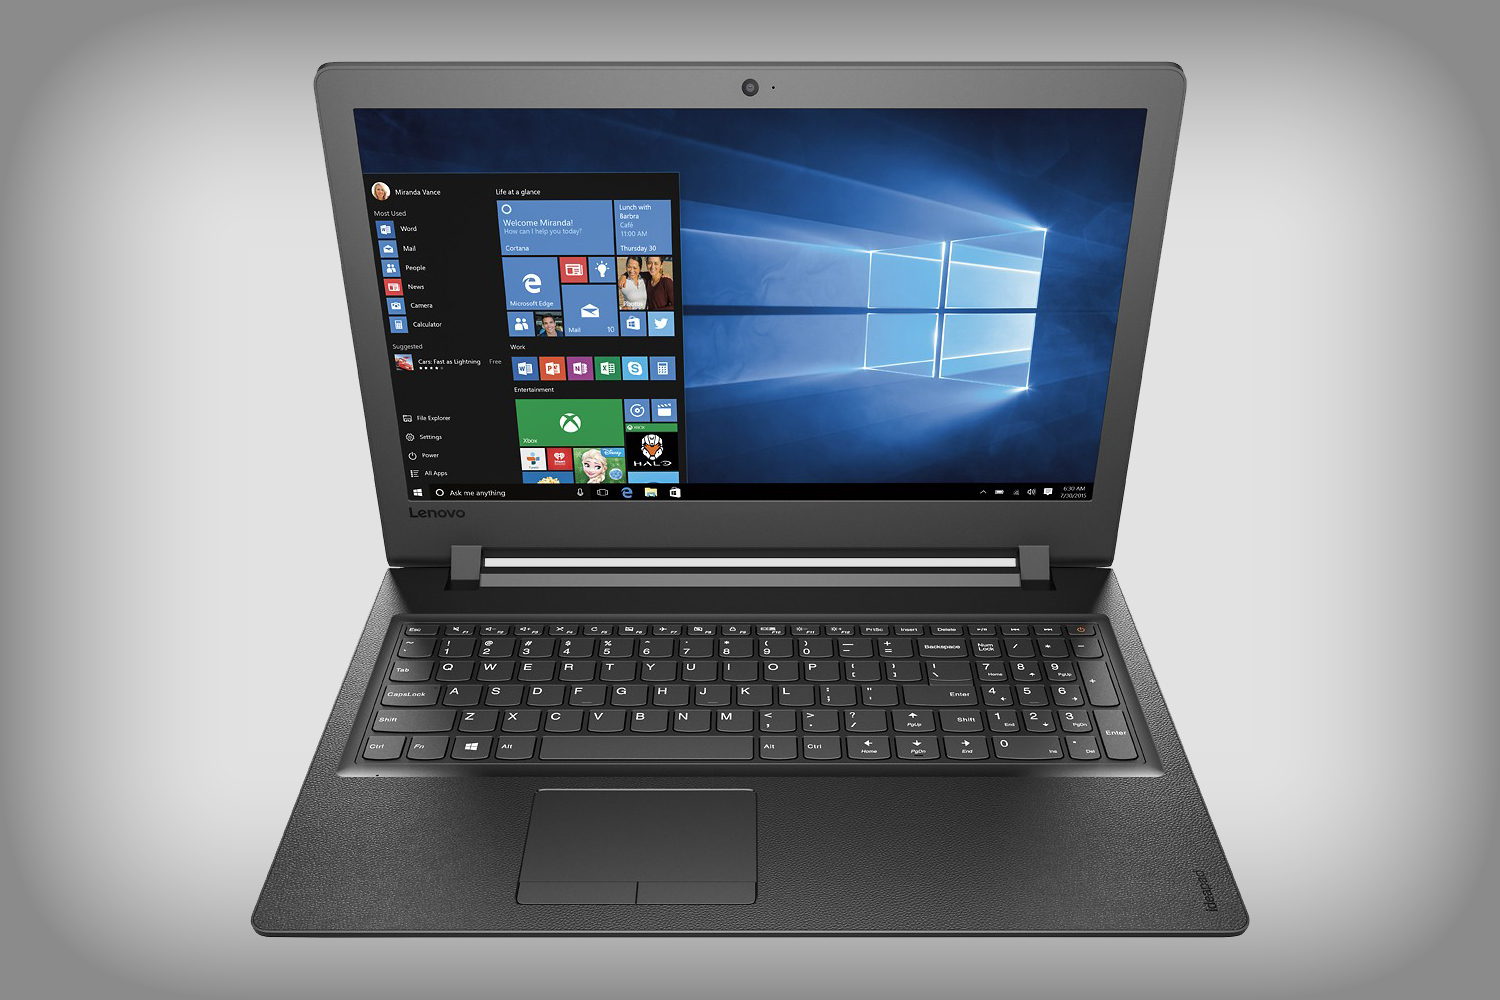 HP Laptops | Dell Laptops | Lenovo Laptops | Acer Laptops | Asus Laptops | Toshiba Laptops | Gaming Laptops | Chromebooks | Touch-Screen Laptops | Laptop Deals Laptops are some of the many Black Friday and Cyber Monday deals available from Staples this holiday season.